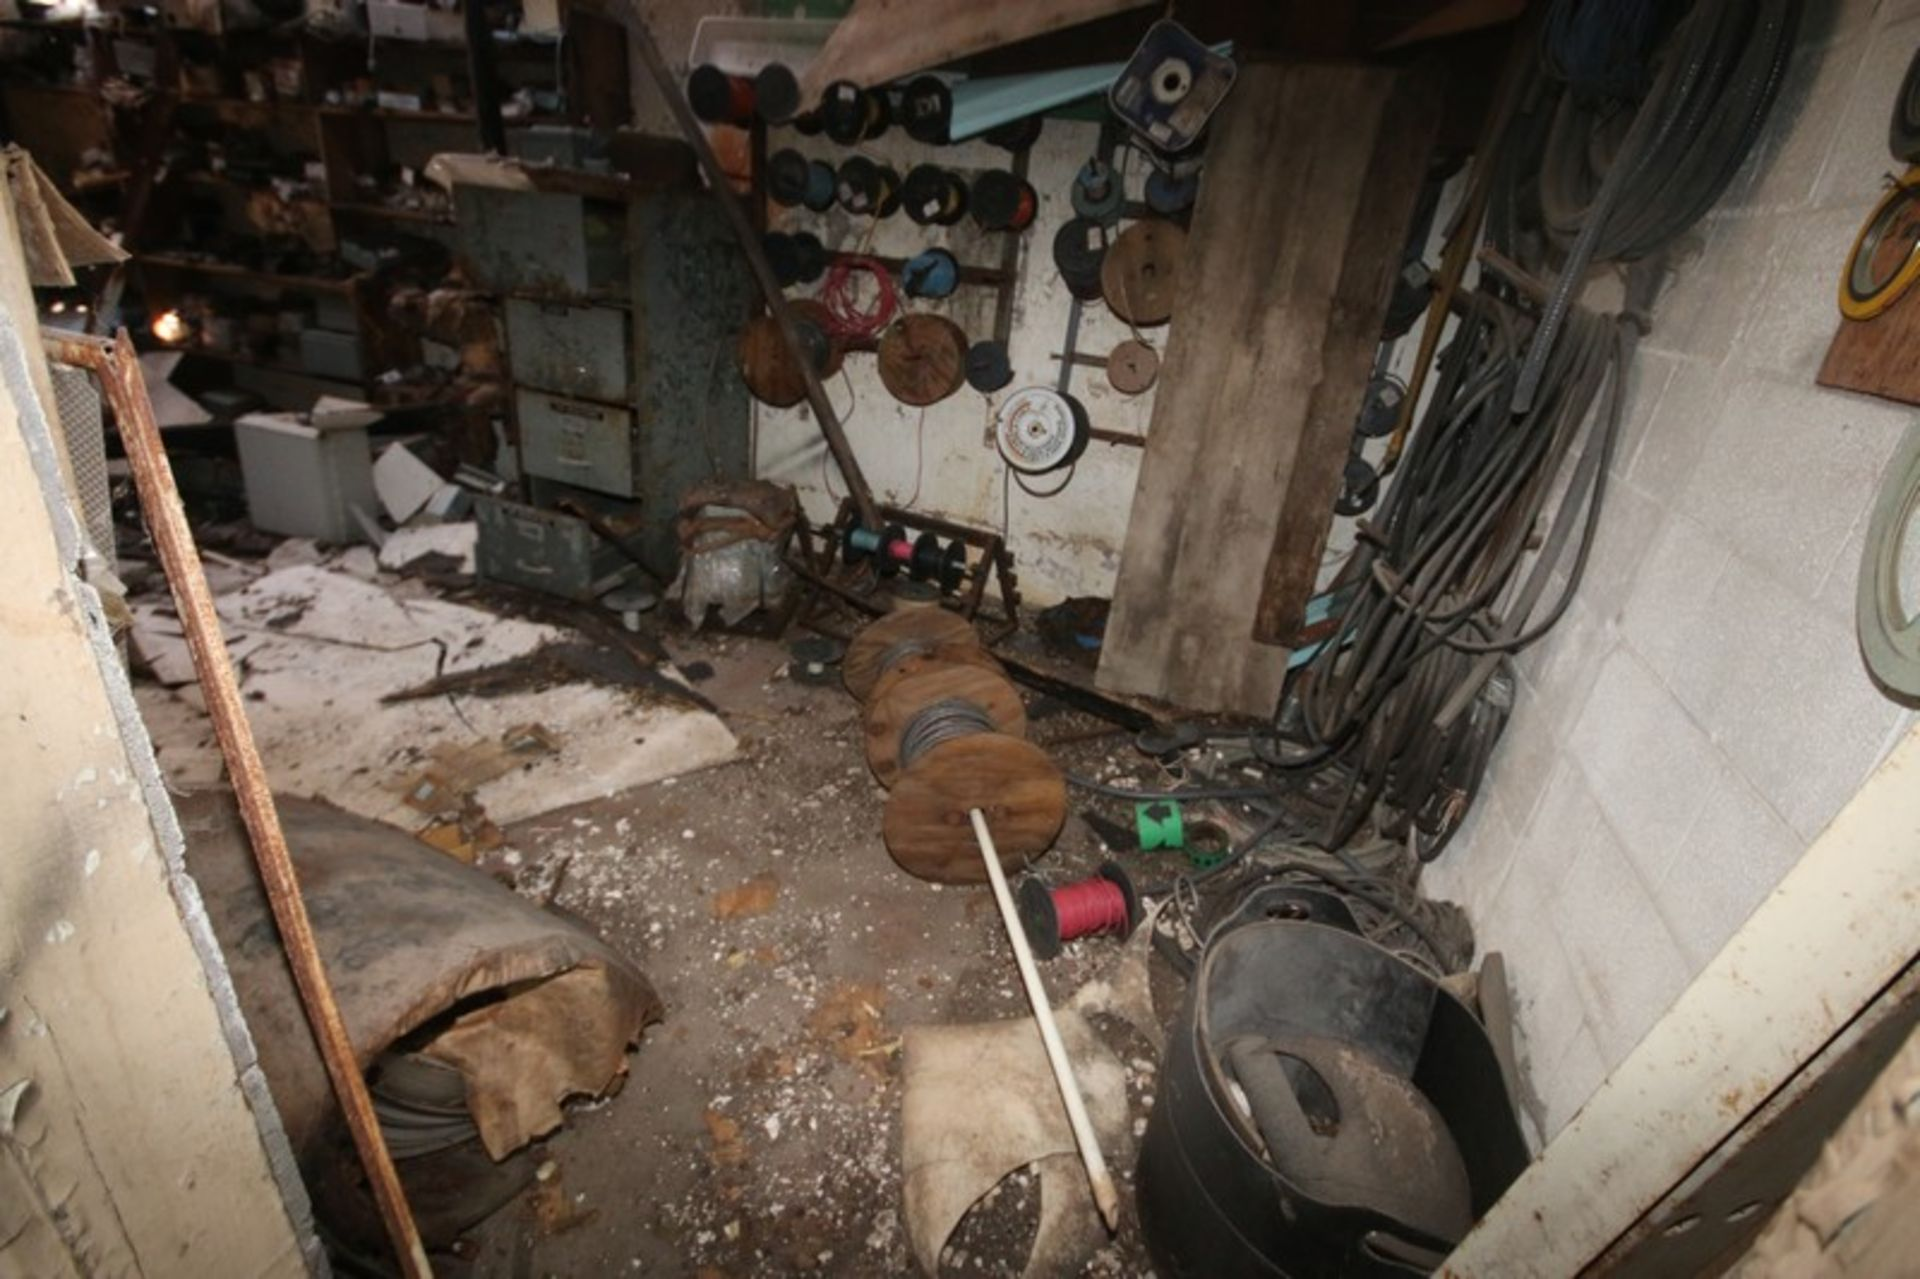 Contents of Parts Room, Includes Bearings, Stainless Steel Pipe, Motors, Belts, Electrical Wire, - Image 20 of 22